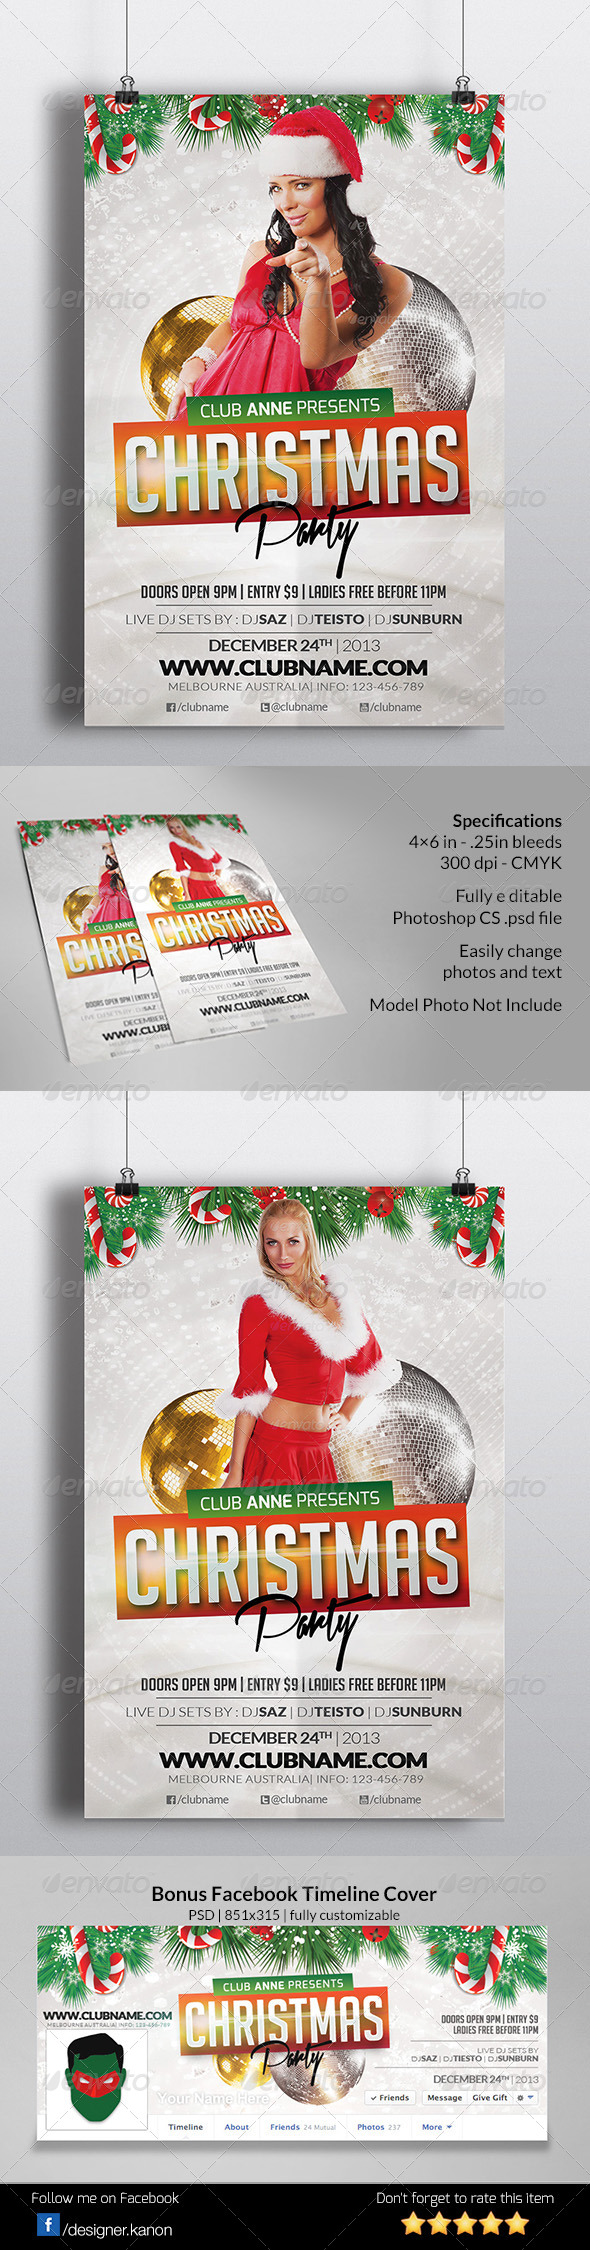 GraphicRiver Christmas Event Flyer & Facebook Cover 6232377